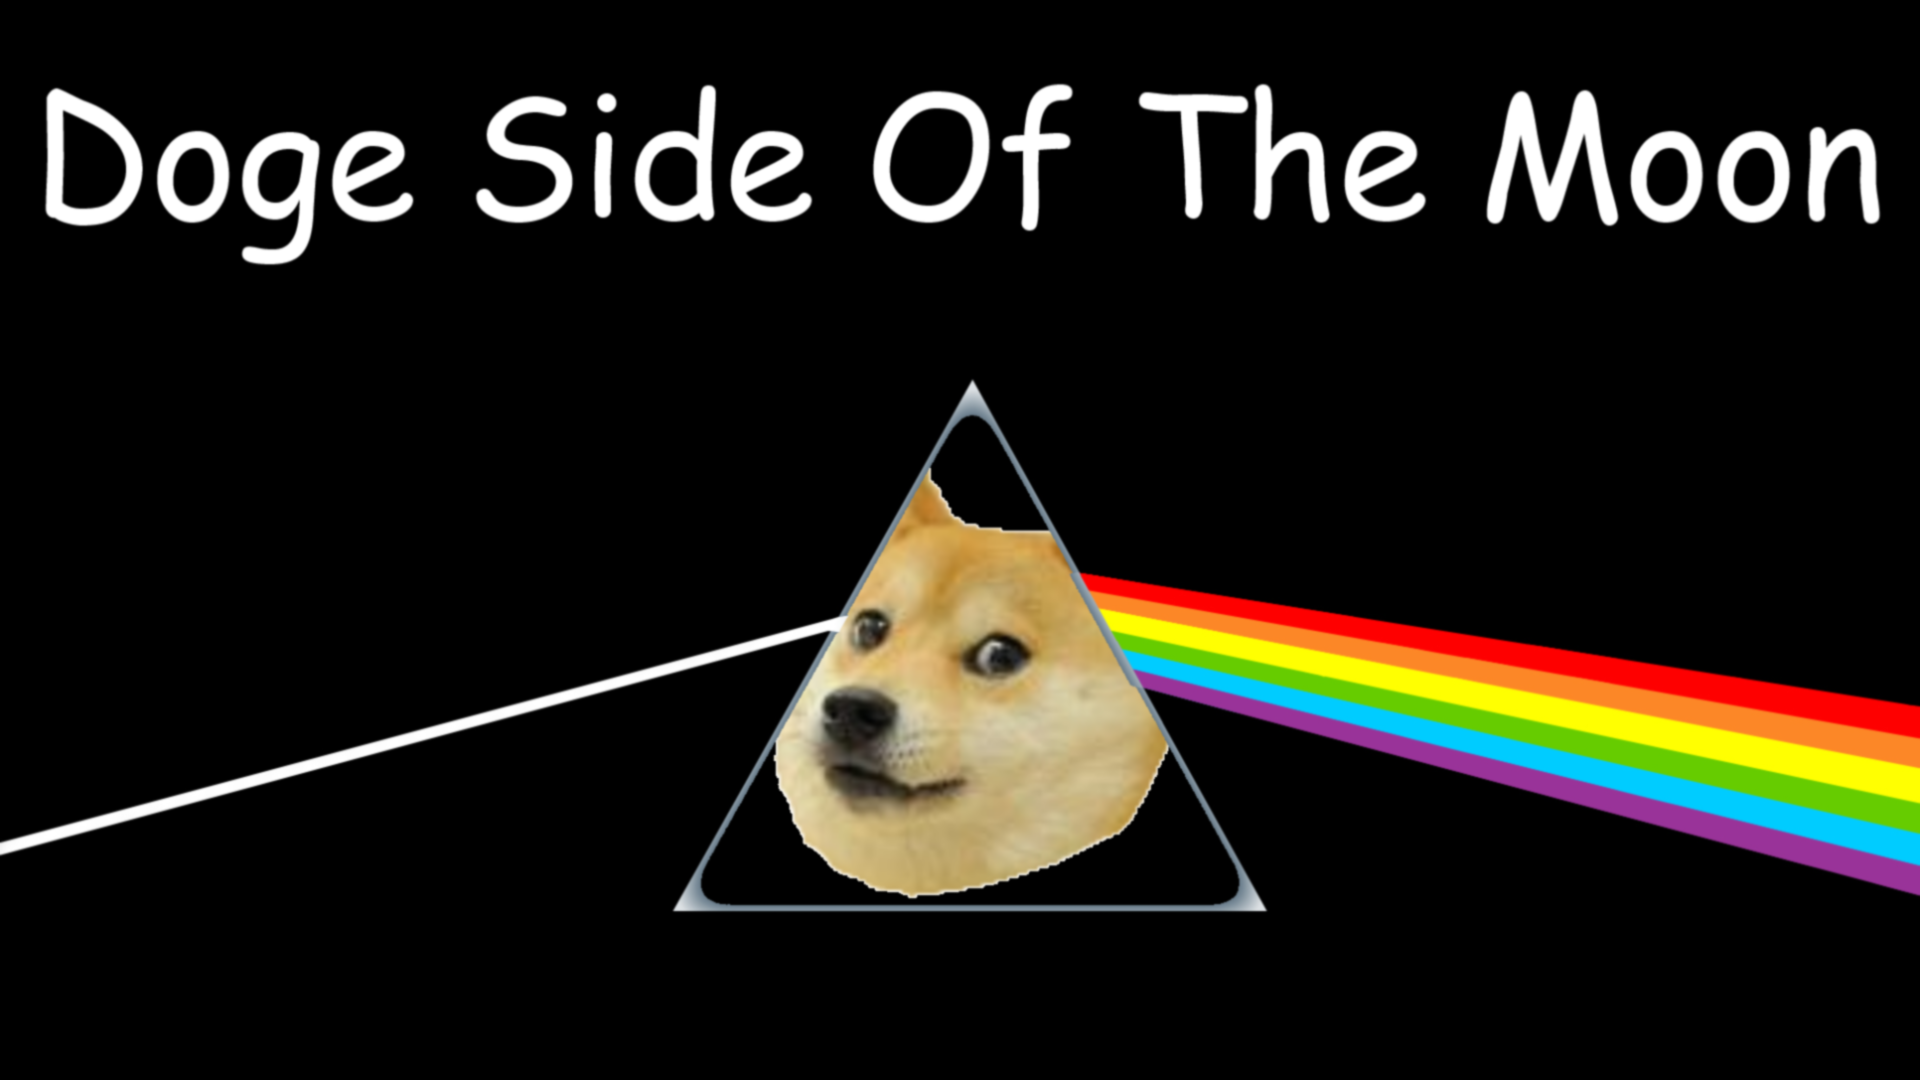 Doge Side of the Moon   Doge Wallpaper 1920x1080 28965 1920x1080